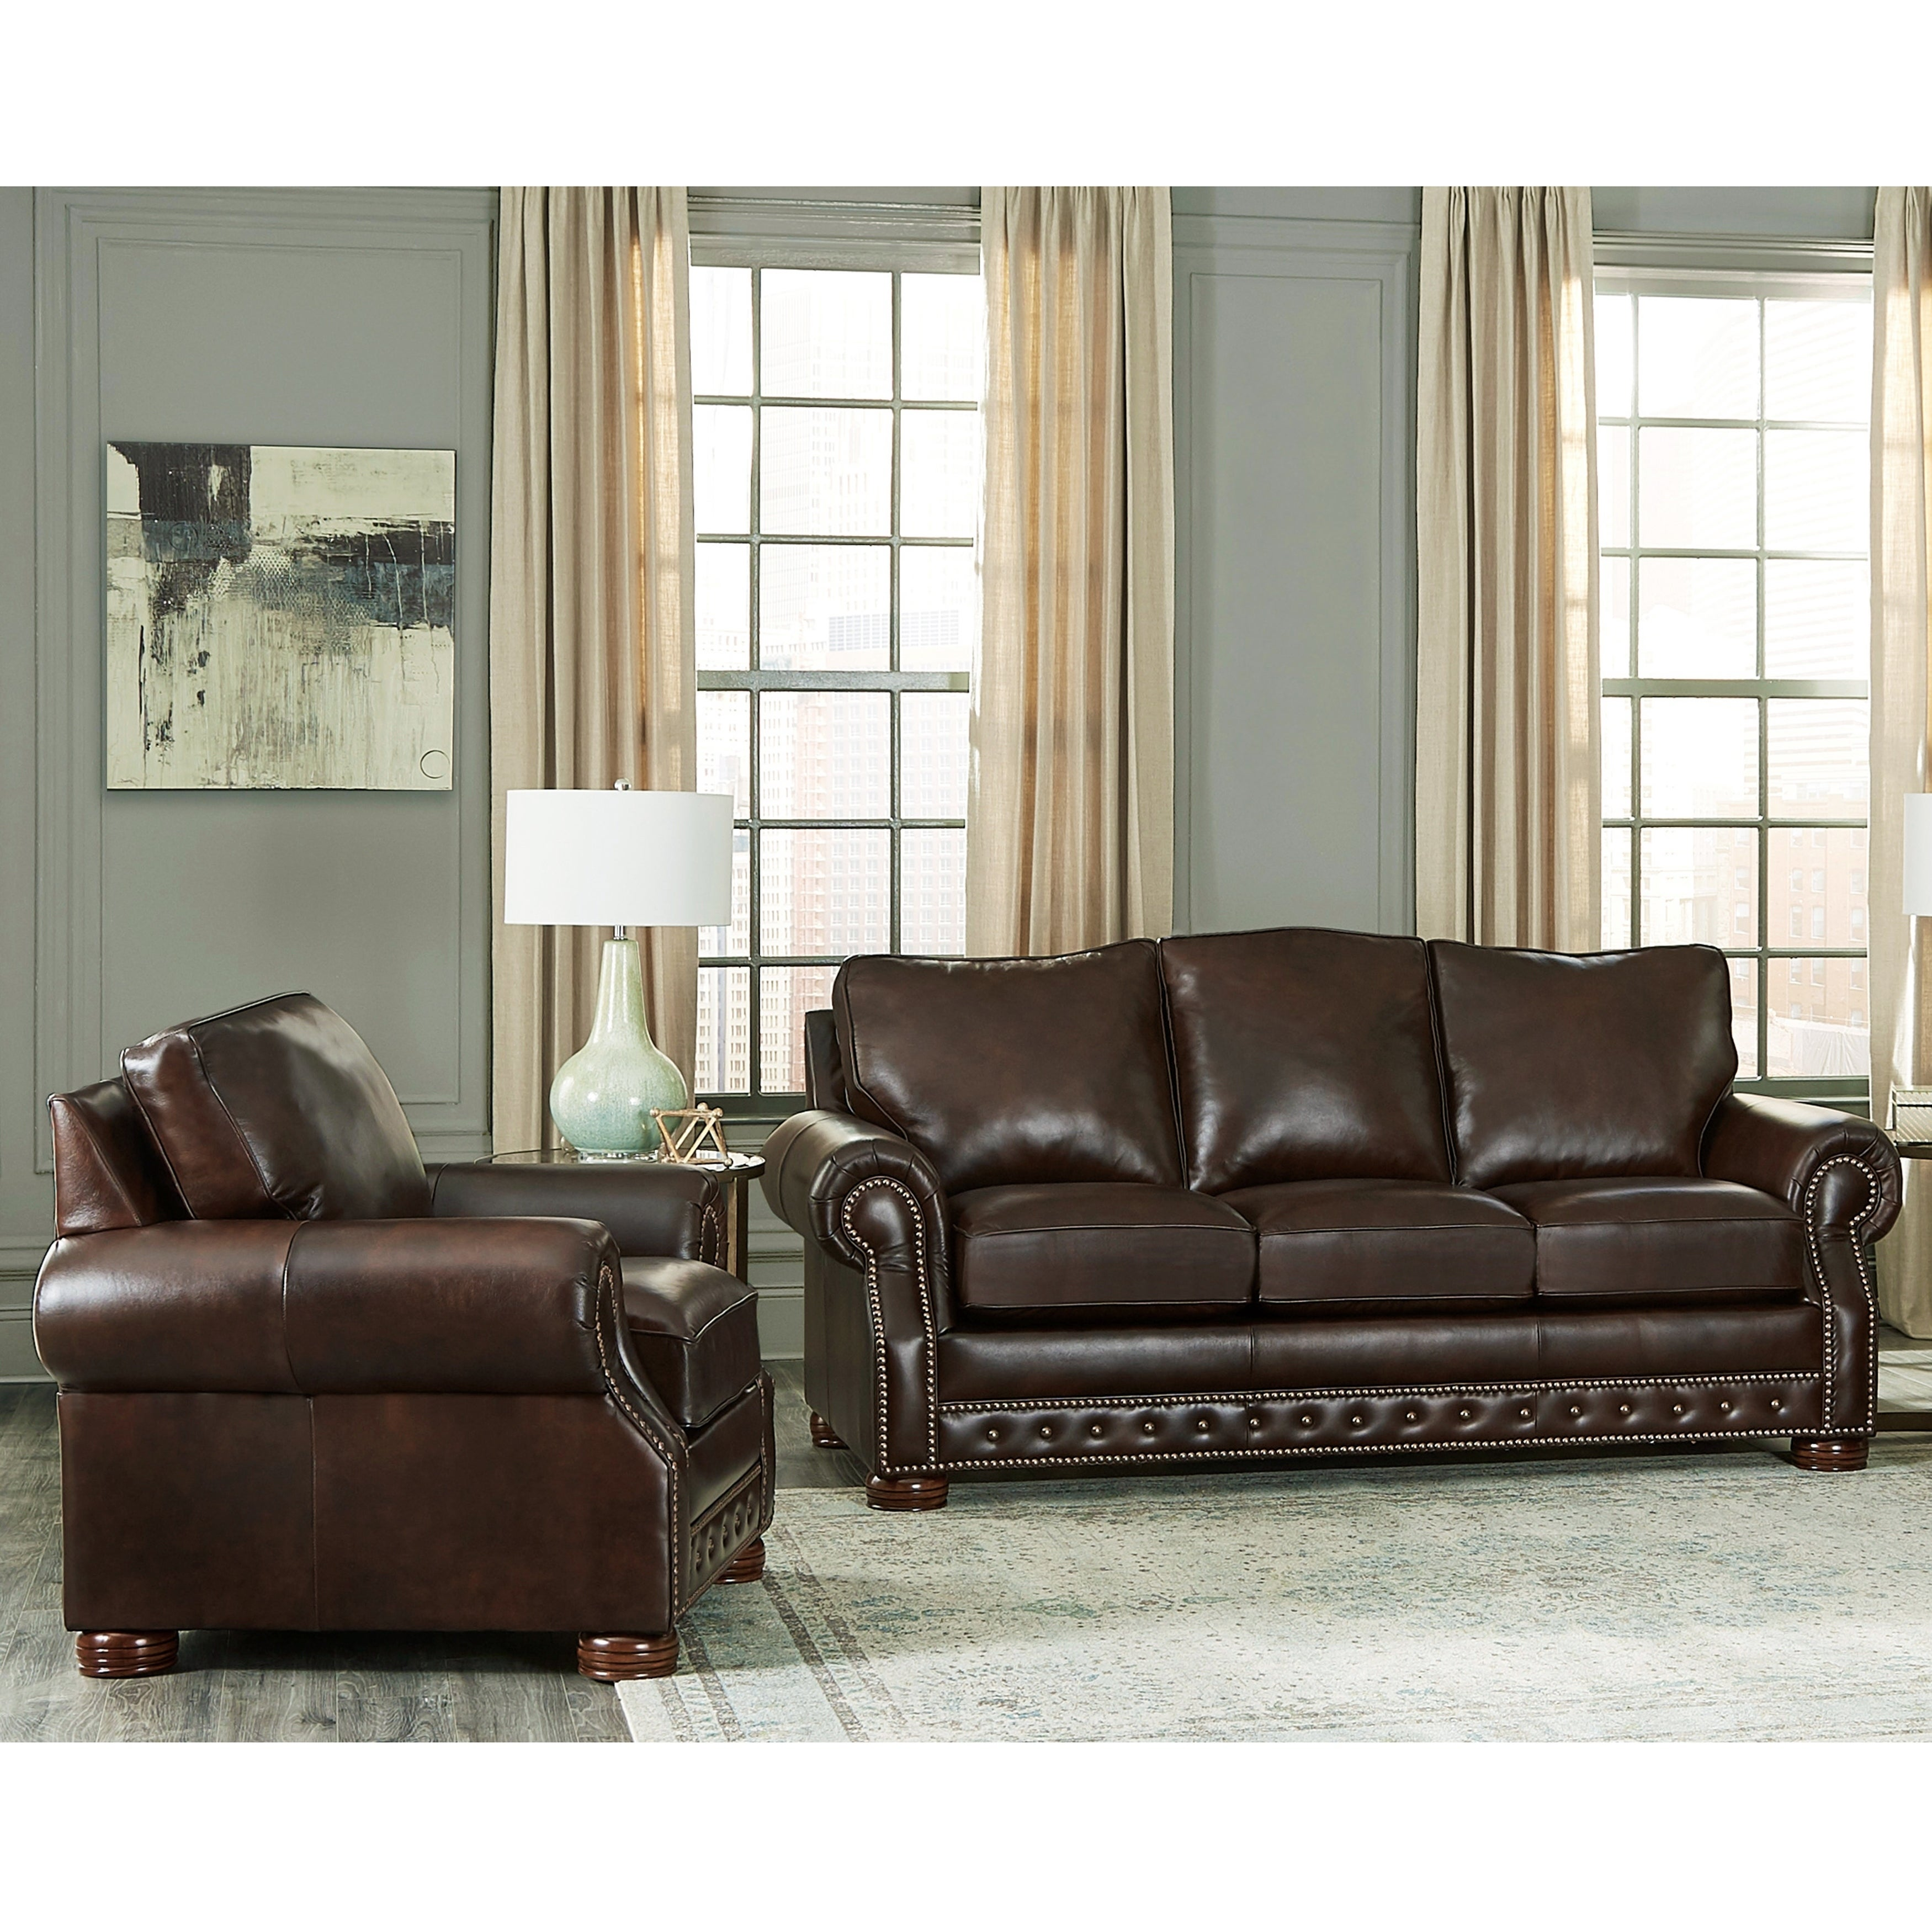 Made in USA Porto Top Grain Leather Sofa Bed and Chair